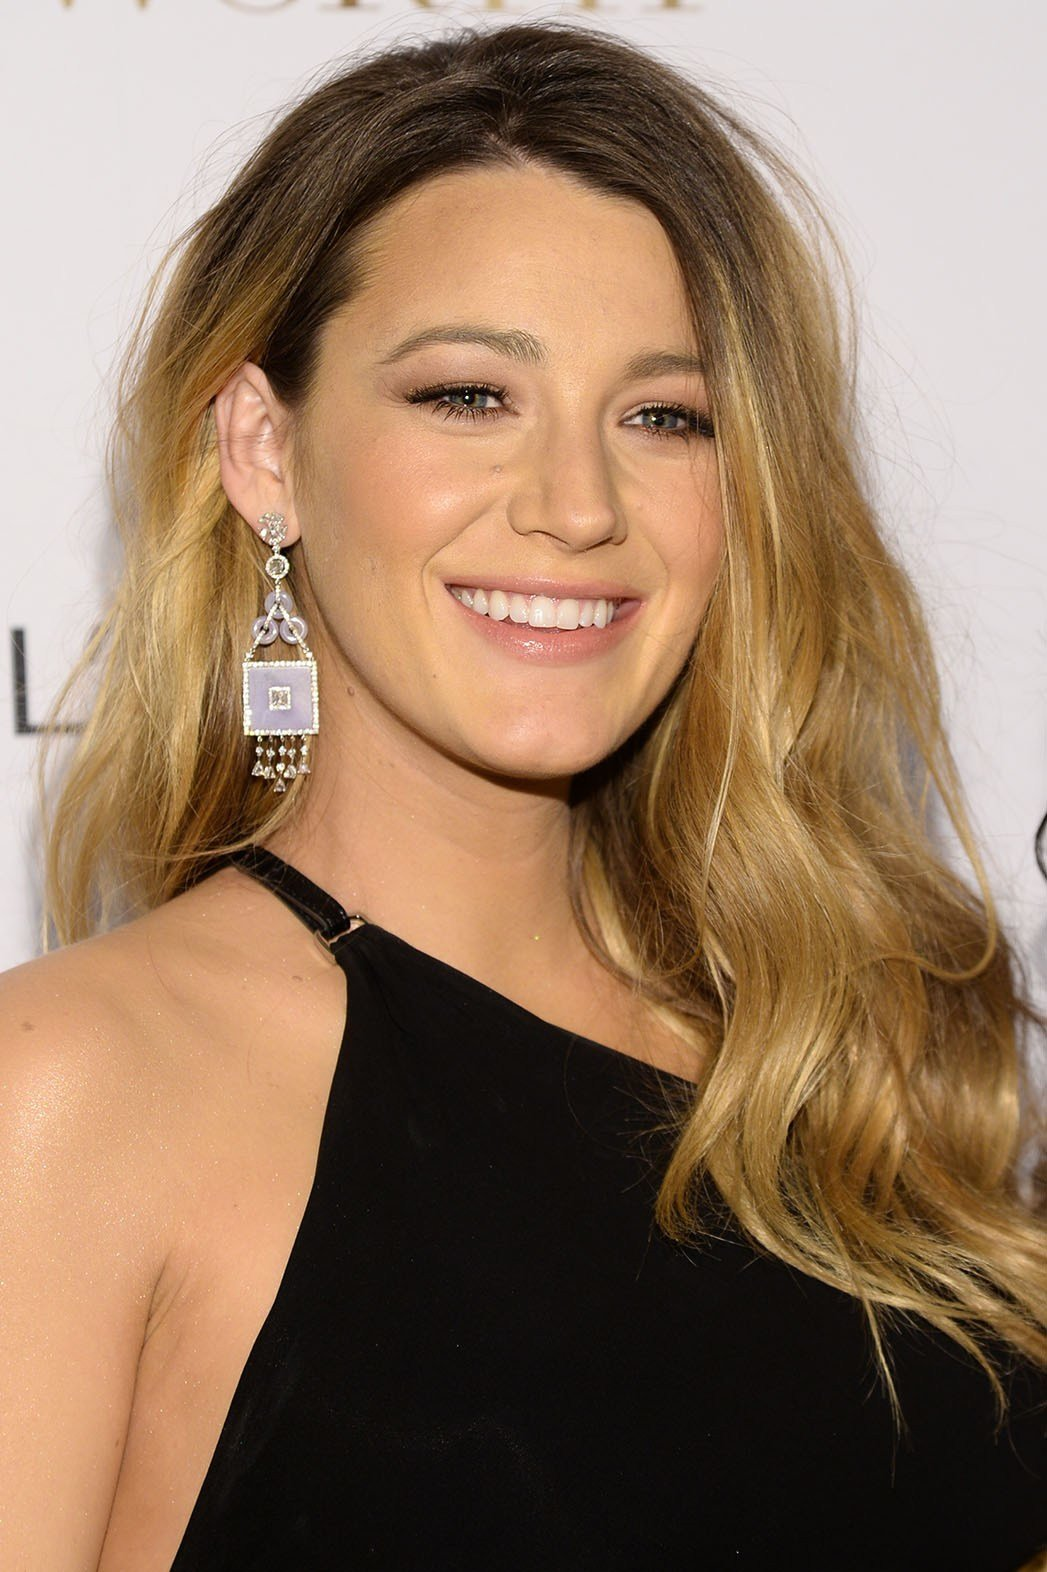 The Best Blake Lively Has Stopped Coloring Her Hair Hollywood Pictures